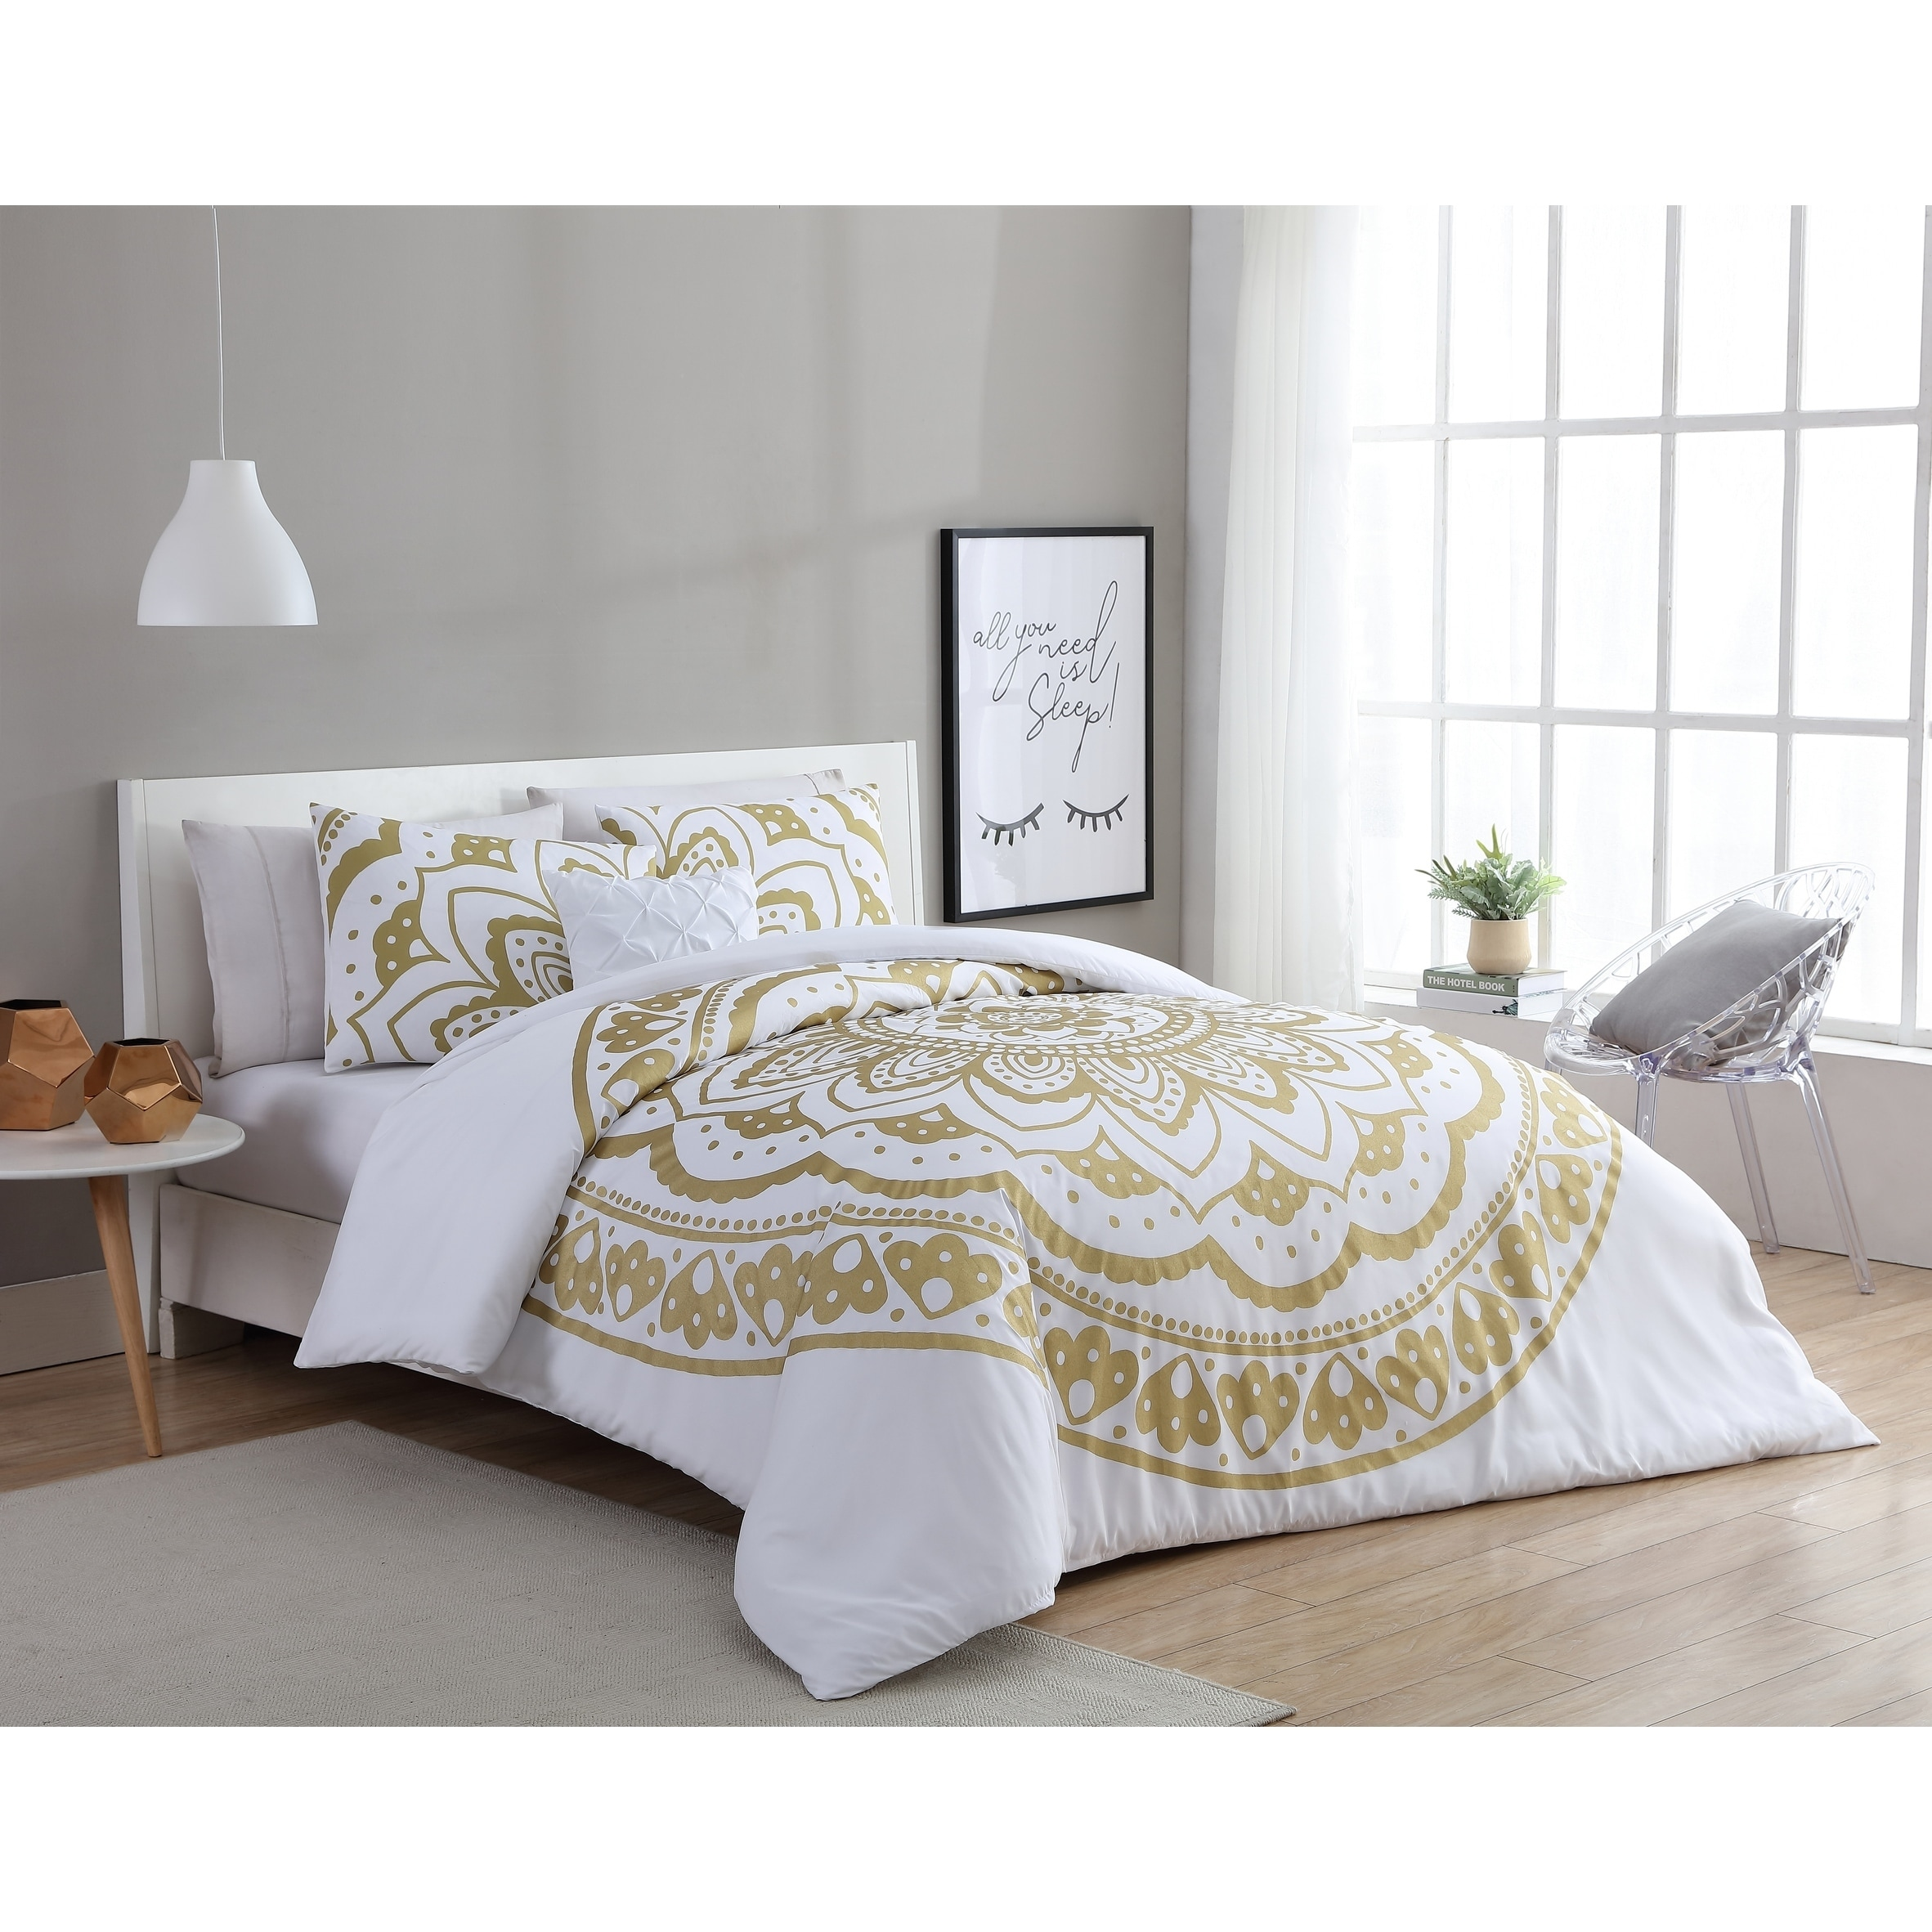 blog sweet collection bedding dreams comforter prod the collections sets hotelwgd have hotel pacific with image nc coast